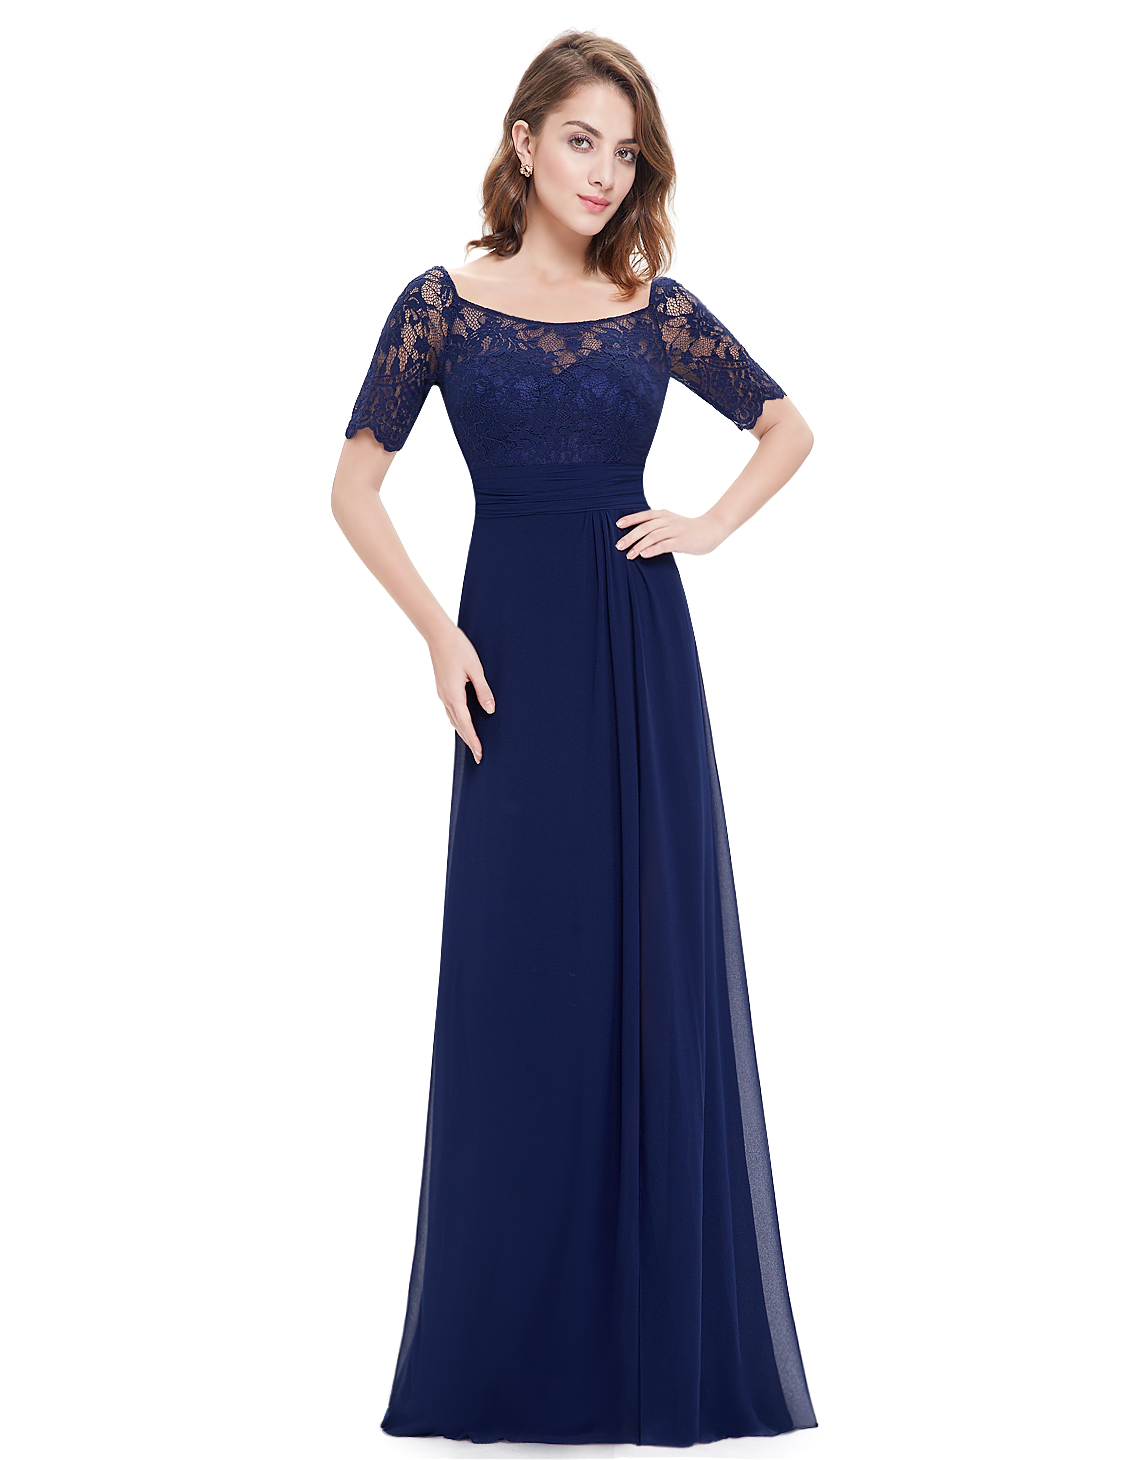 Details about Ever-Pretty Chiffon Bridesmaid Dress Long Sleeve Formal  Evening Dresses 08793